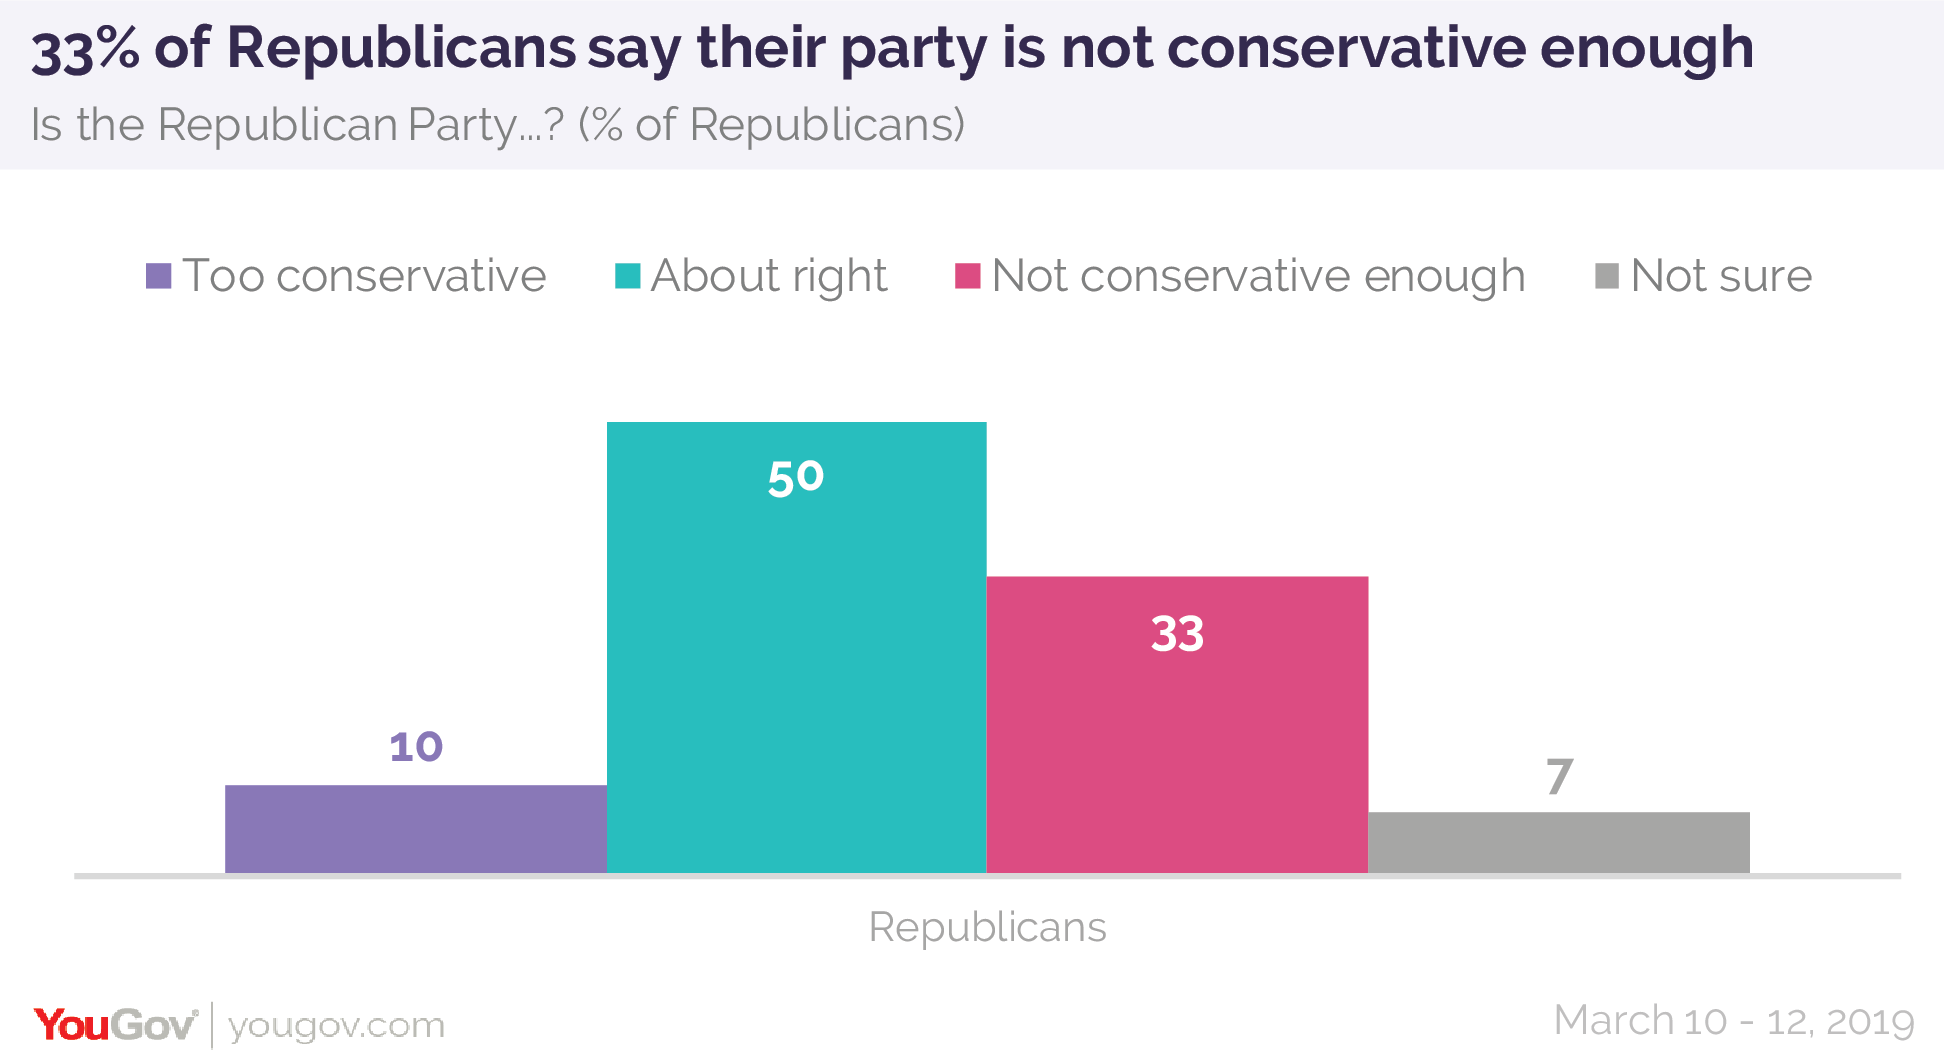 33% of Republicans say their party is not conservative enough